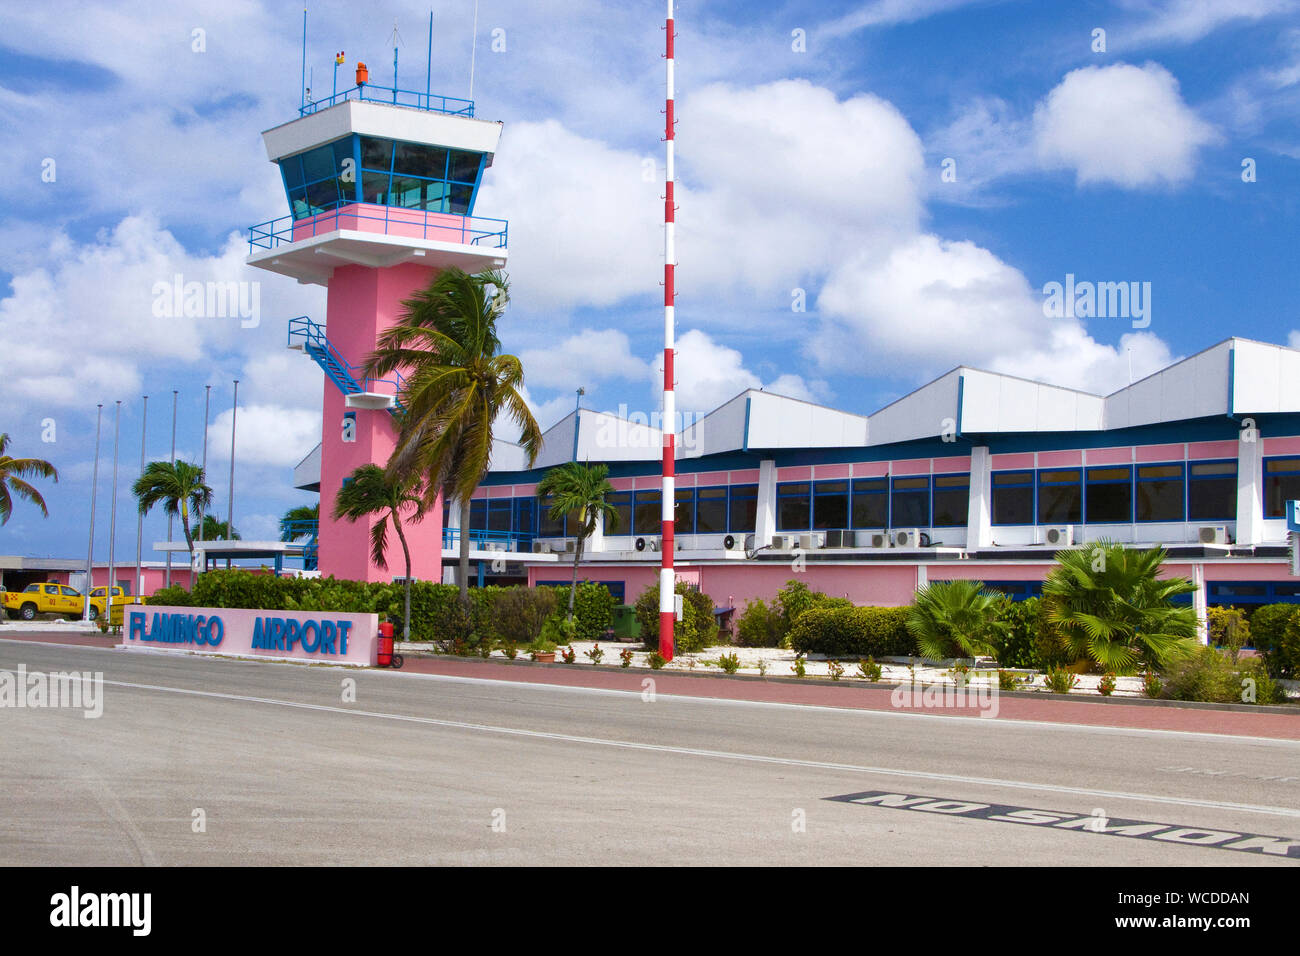 Tower of Flamingo Airport, Bonaire International Airport, Kralendijk, Bonaire, Netherland Antilles Stock Photo